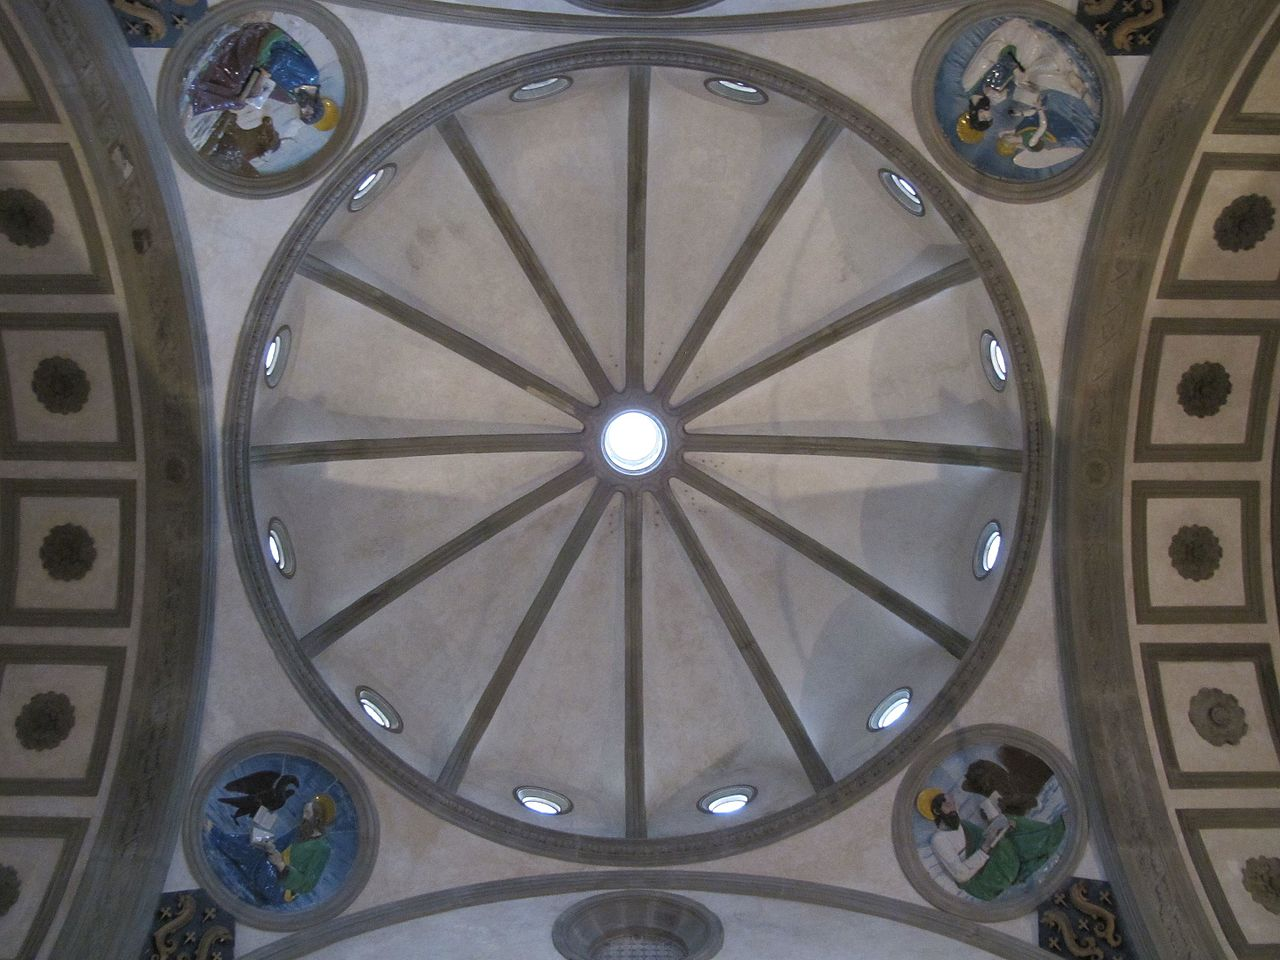 Dome of the Pazzi Chapel in Florence